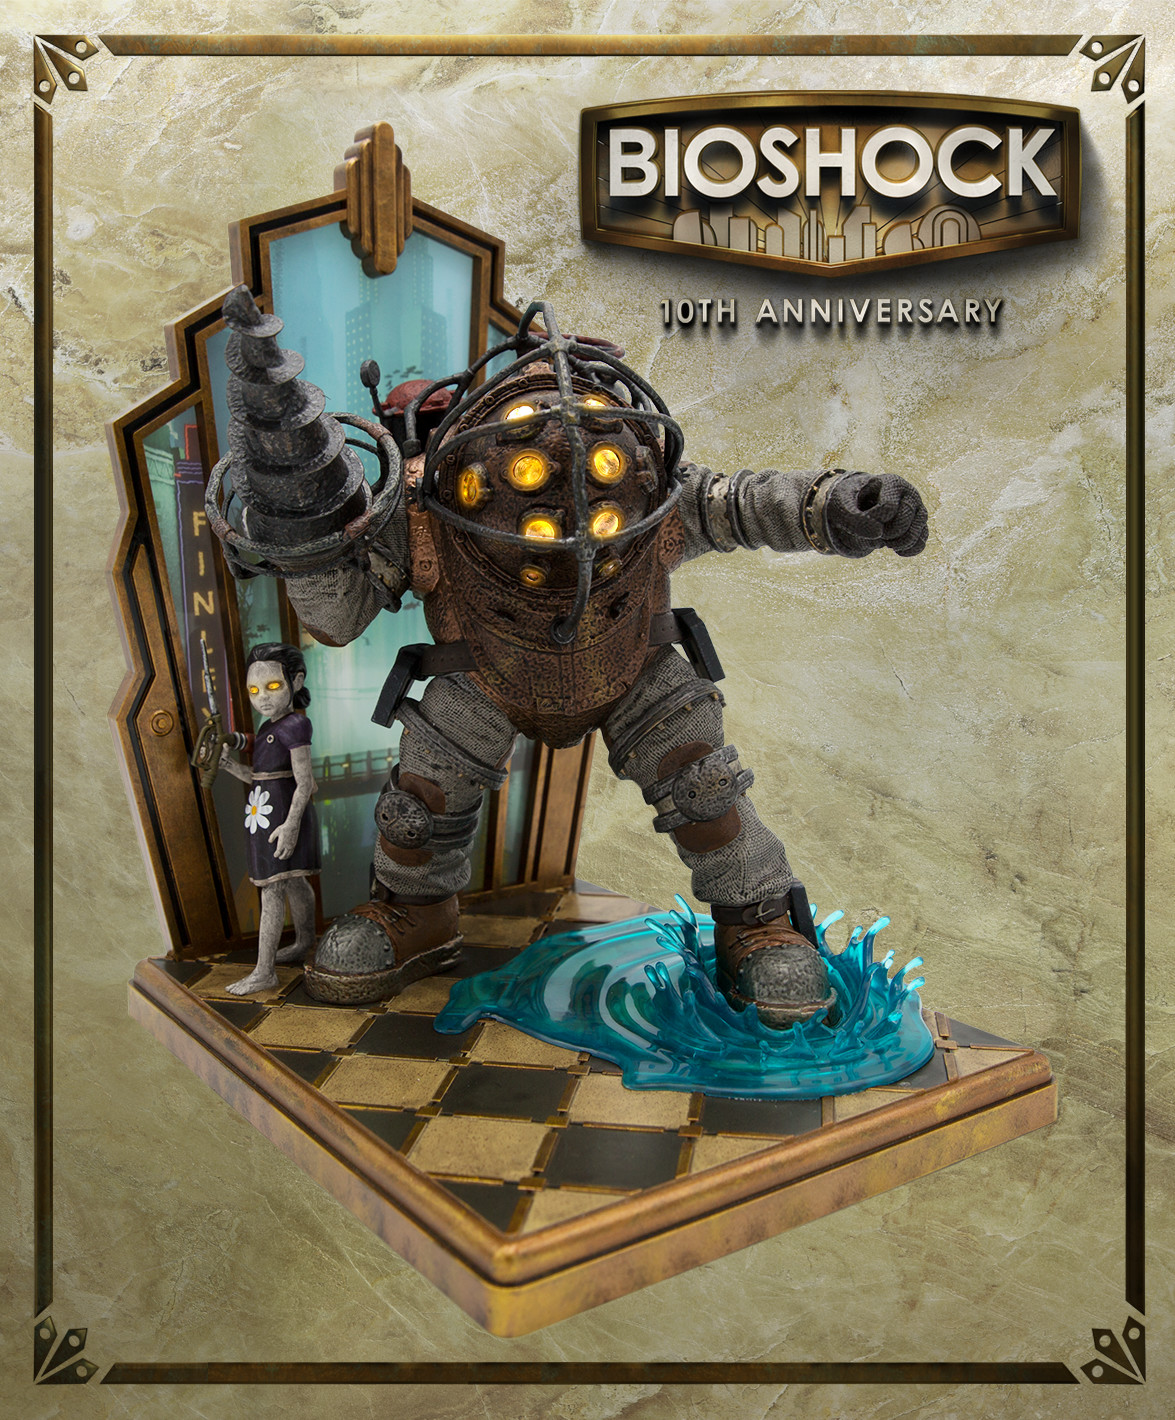 2K unveils BioShock 10th Anniversary Collector's Edition, includes a Big Daddy statue